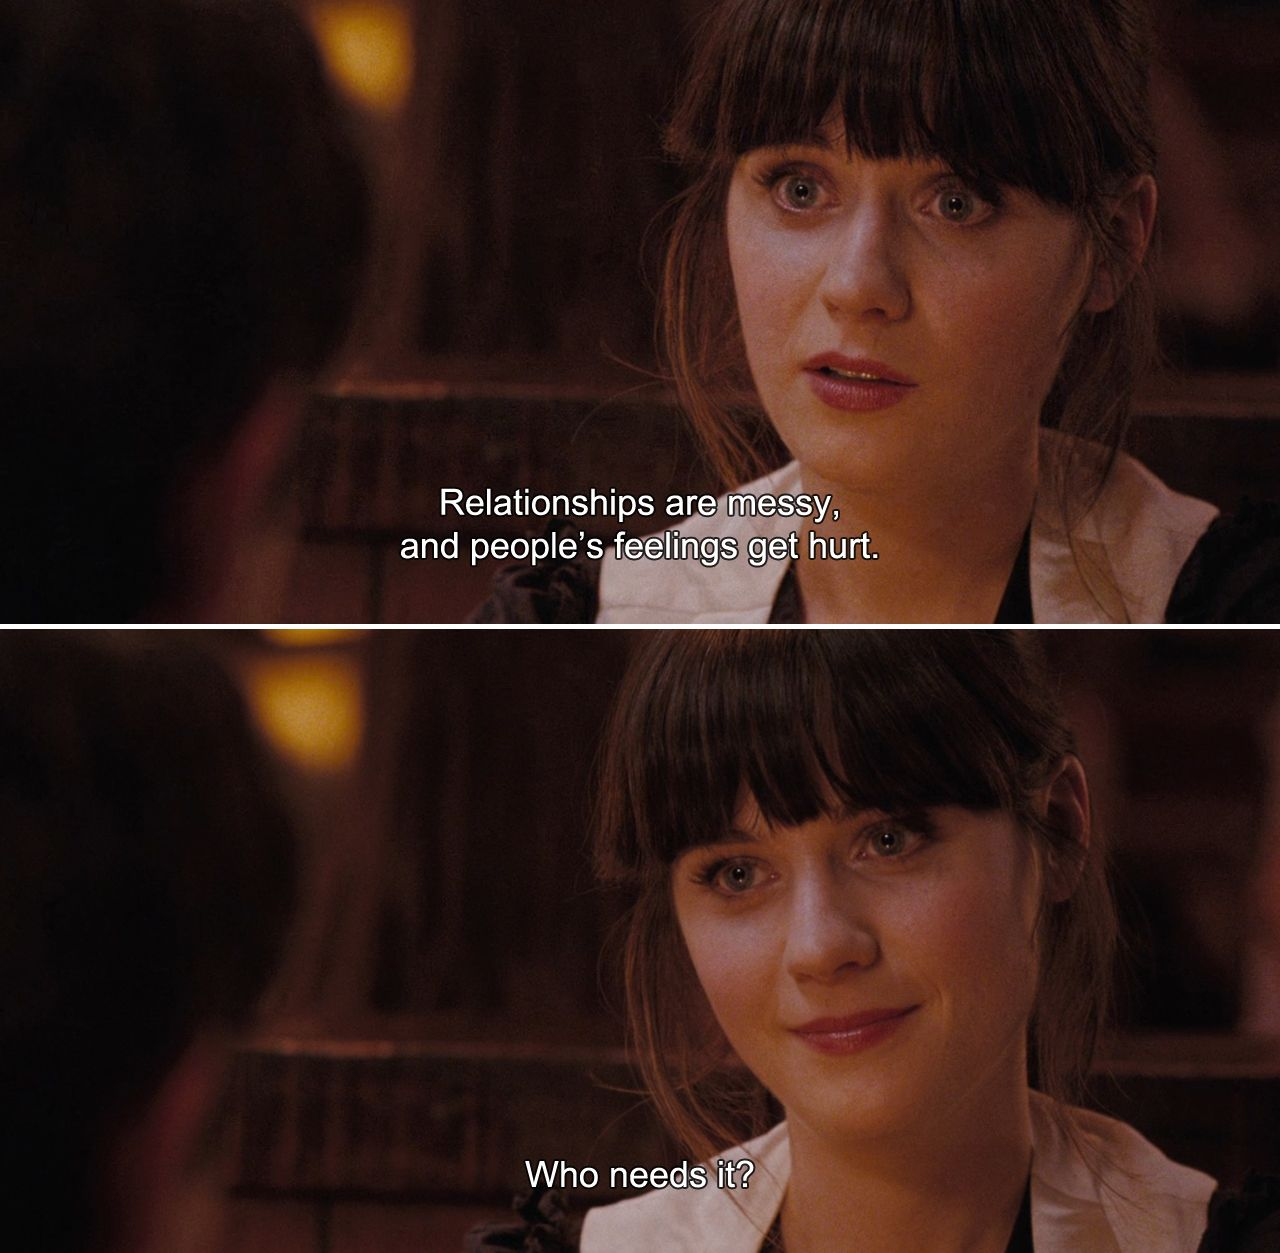 bd6ffc3c96ea (500) Days of Summer (2009)Summer  Relationships are messy